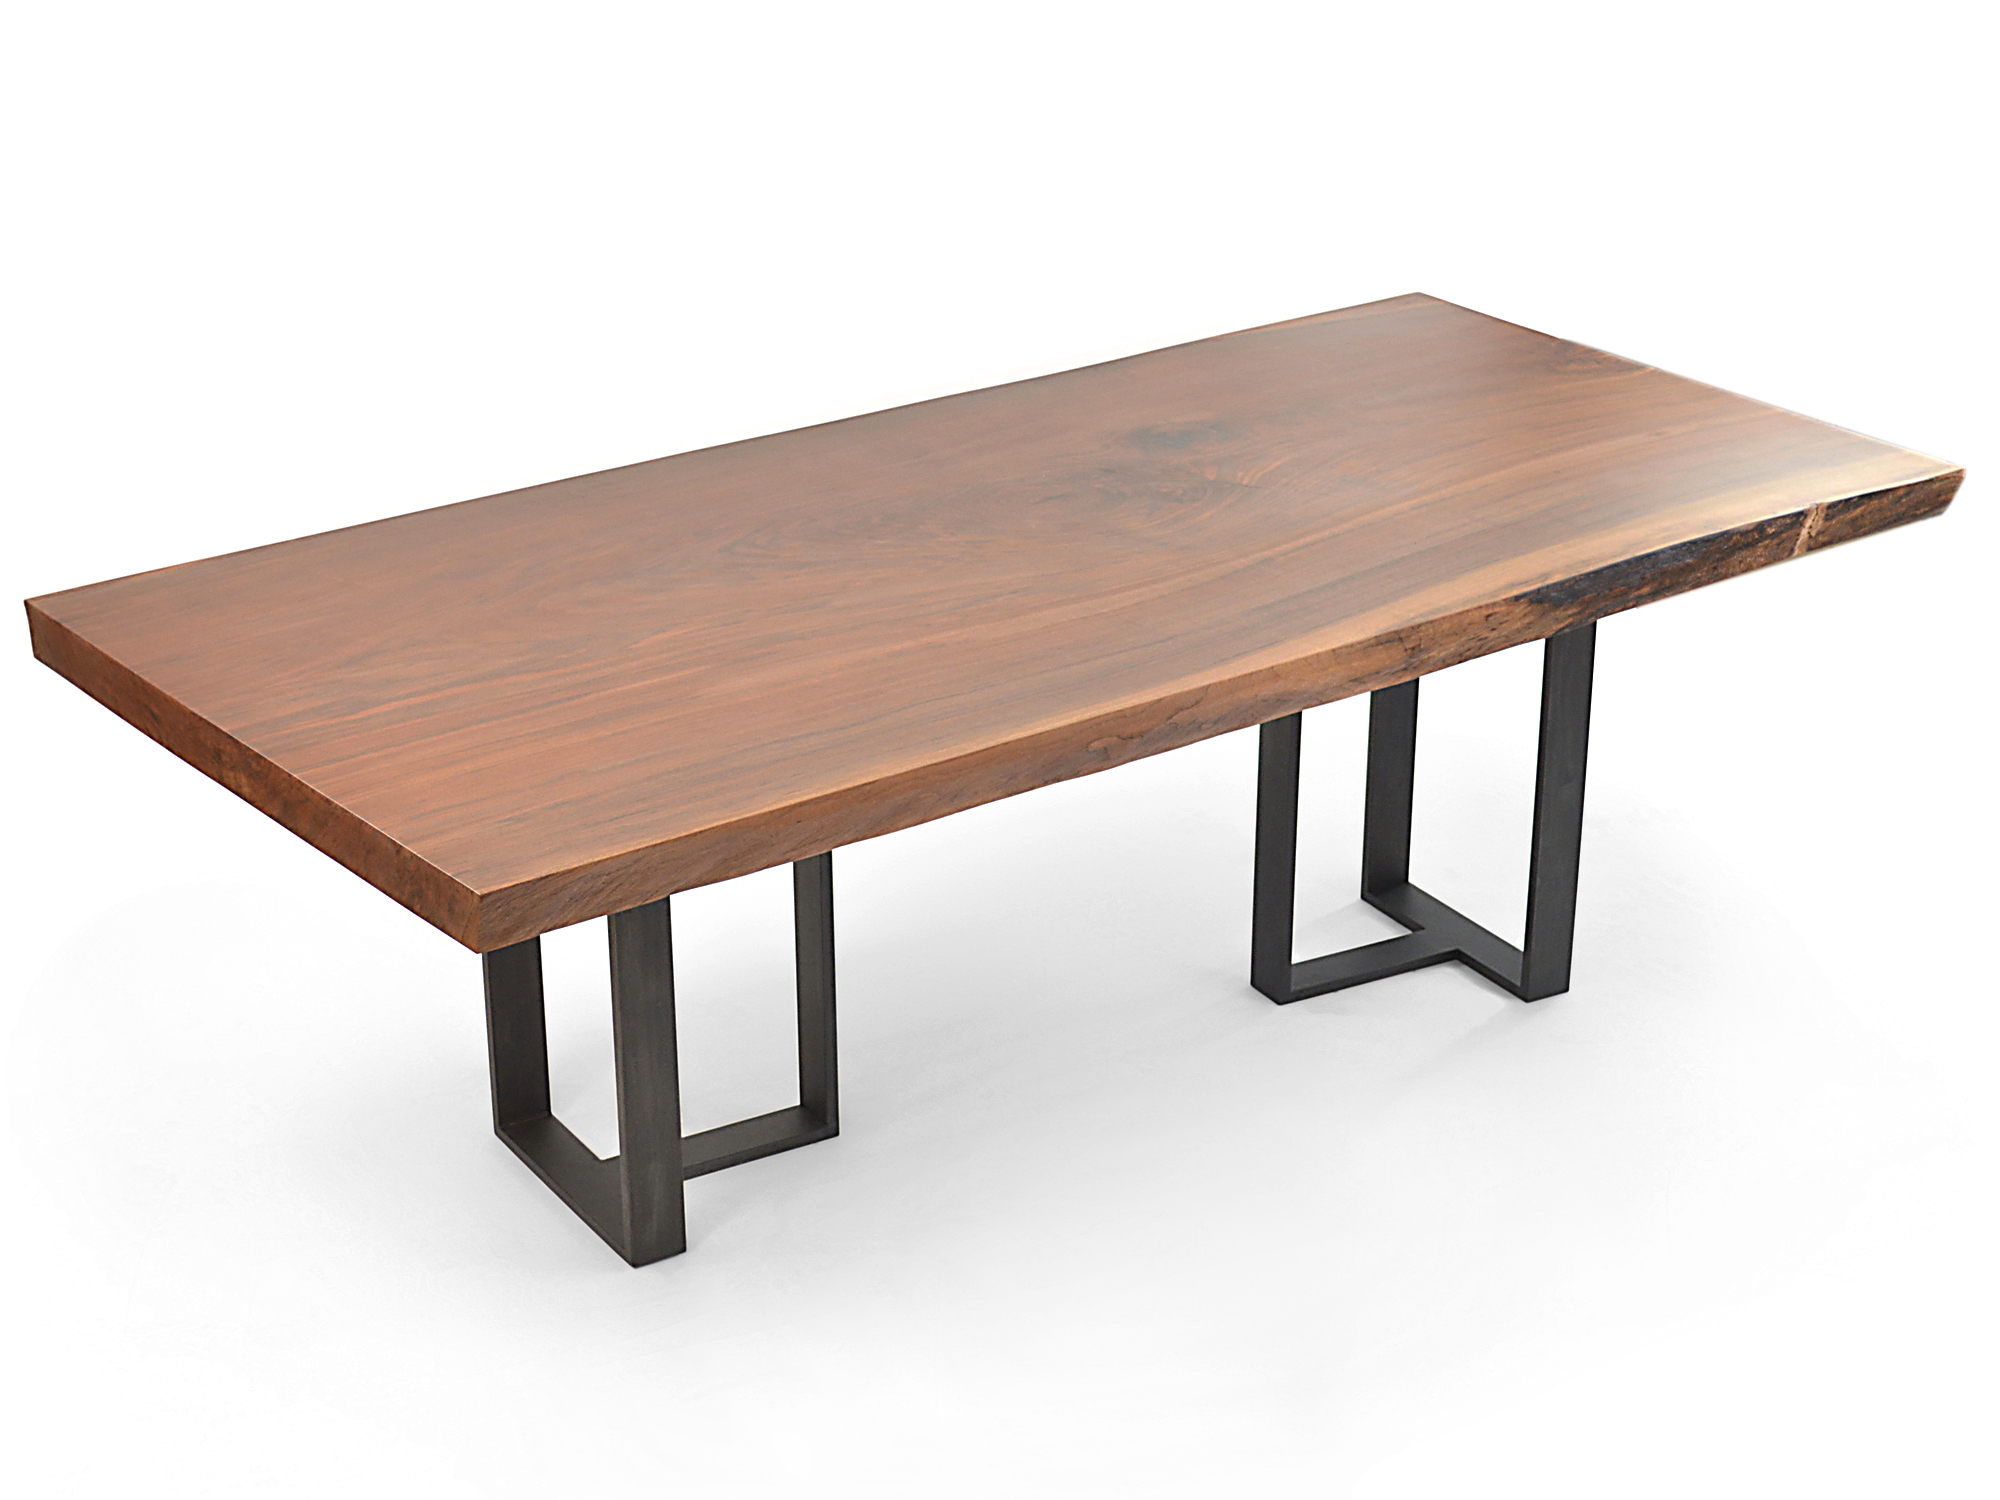 Project Feature: A Custom Dining Table for Plusdesign